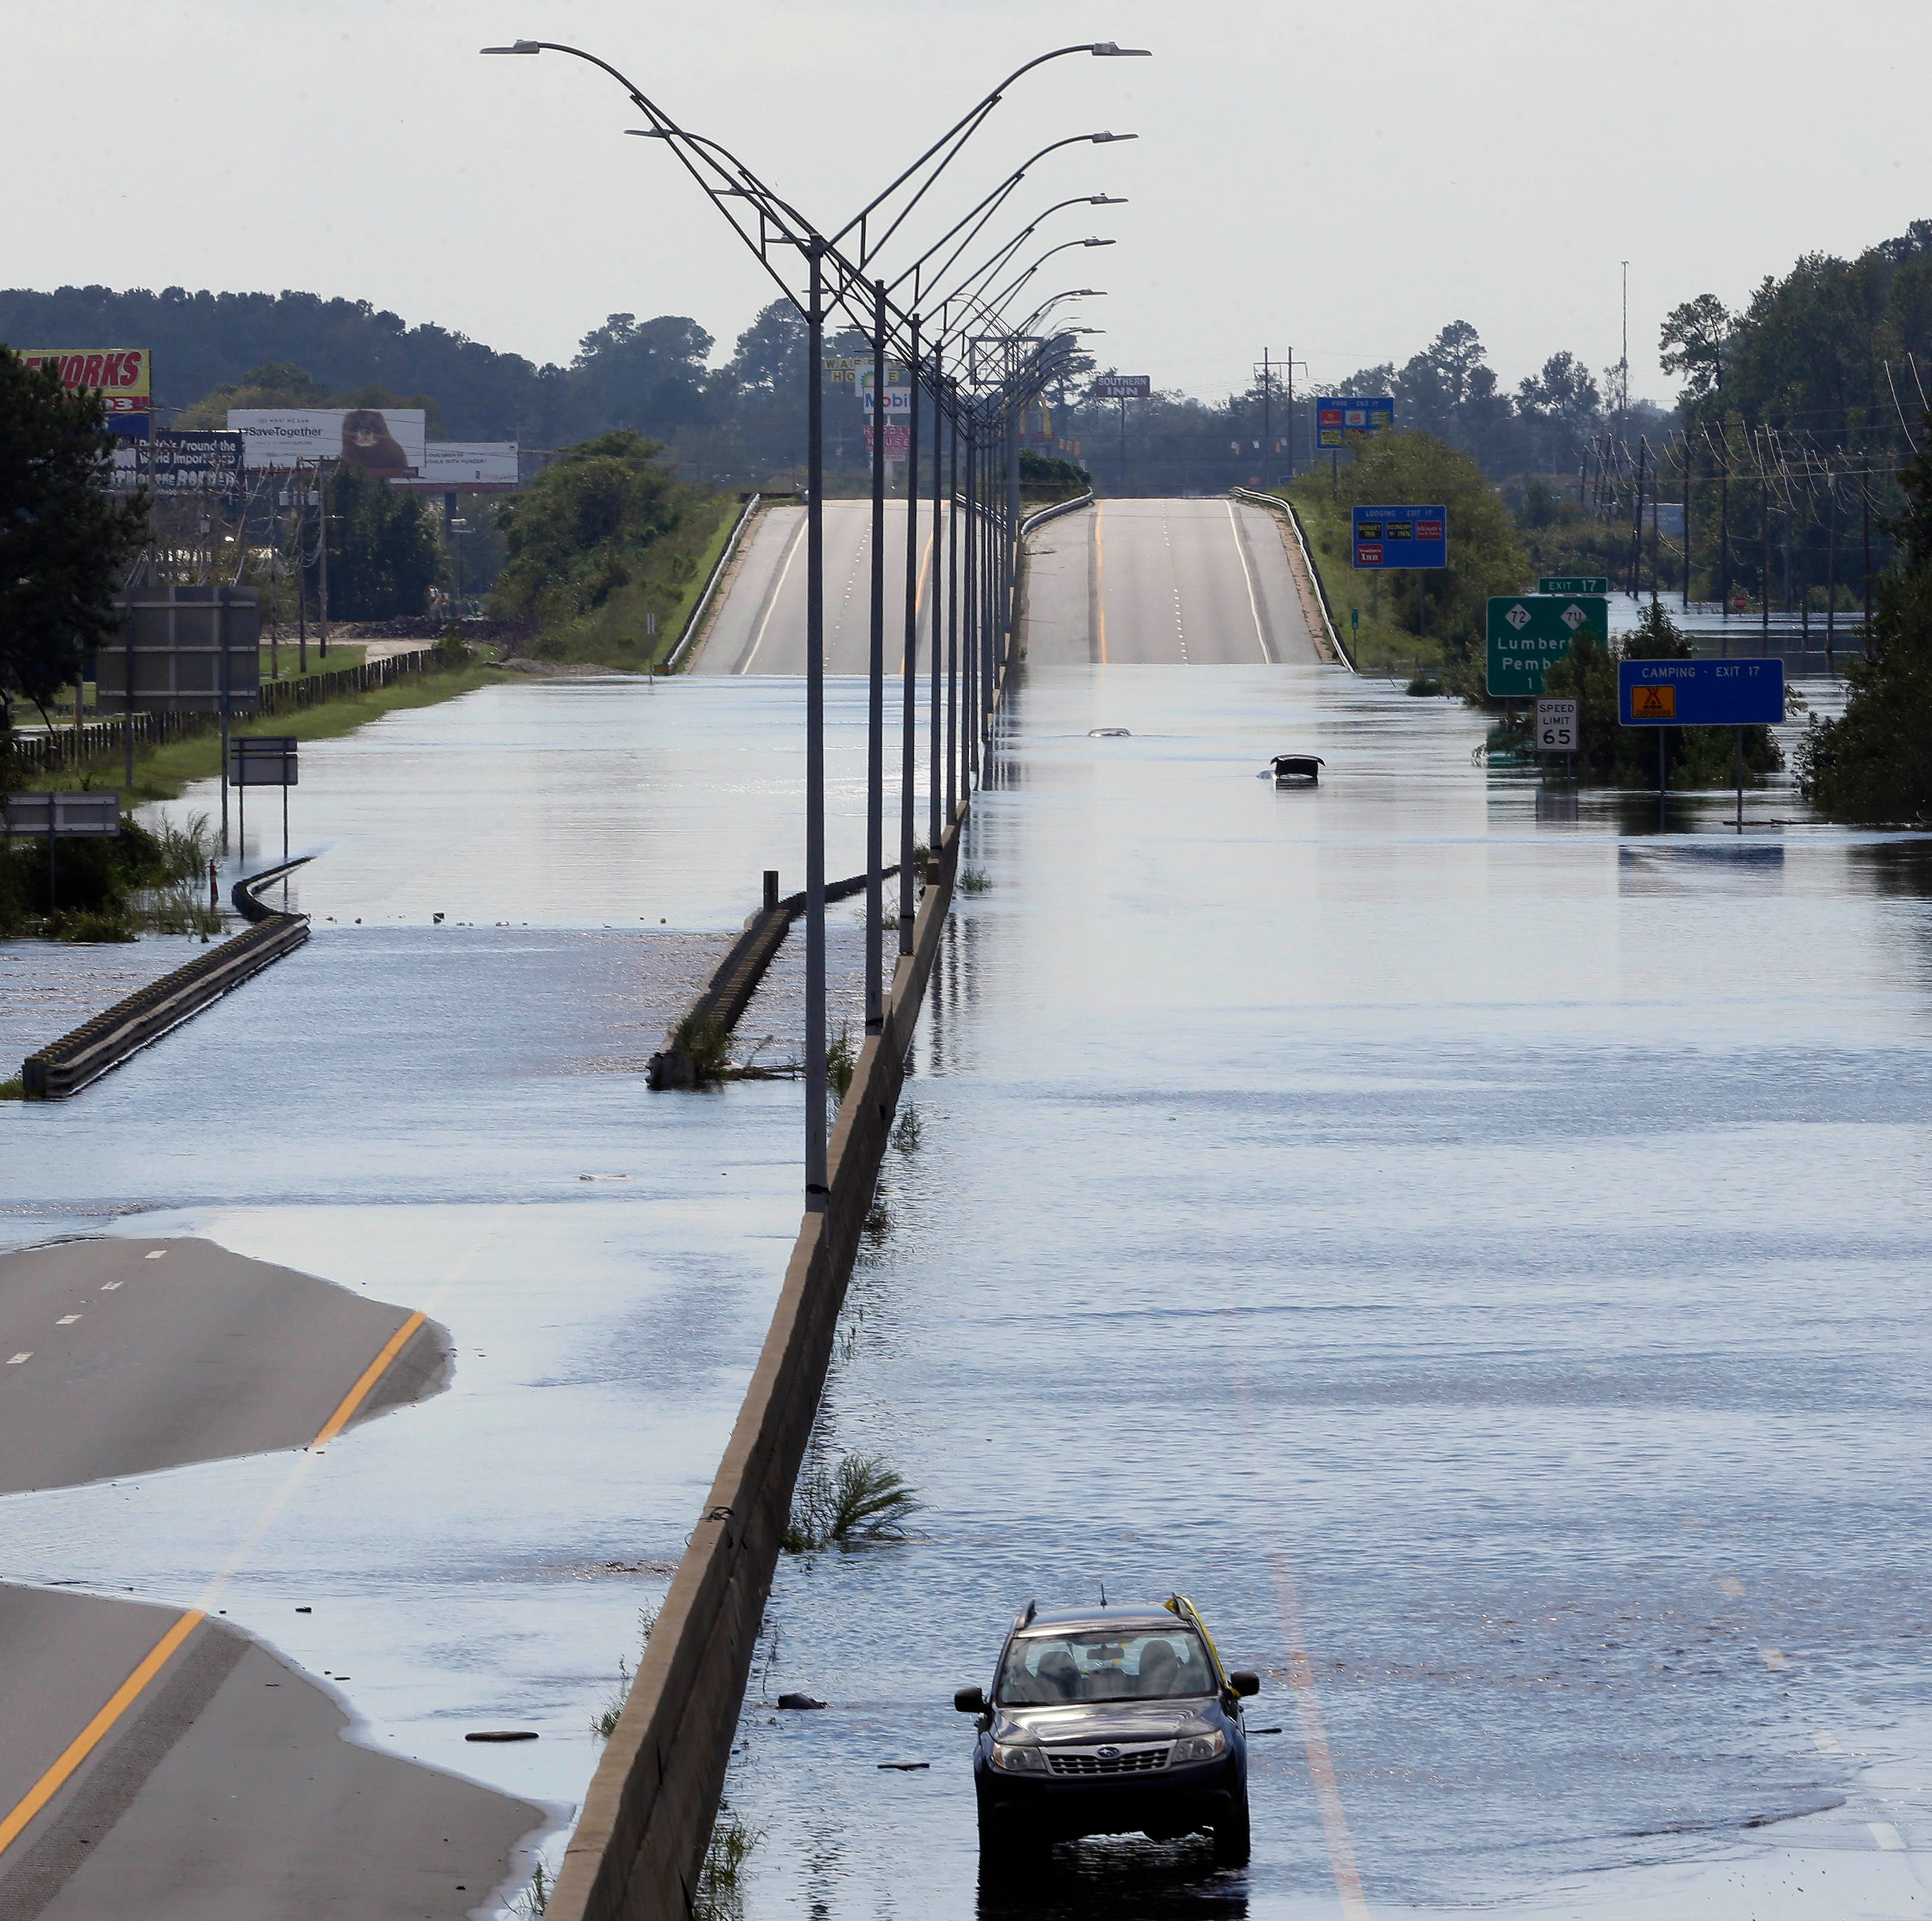 All of I-95 in NC is now open after flooding closures from Hurricane Florence